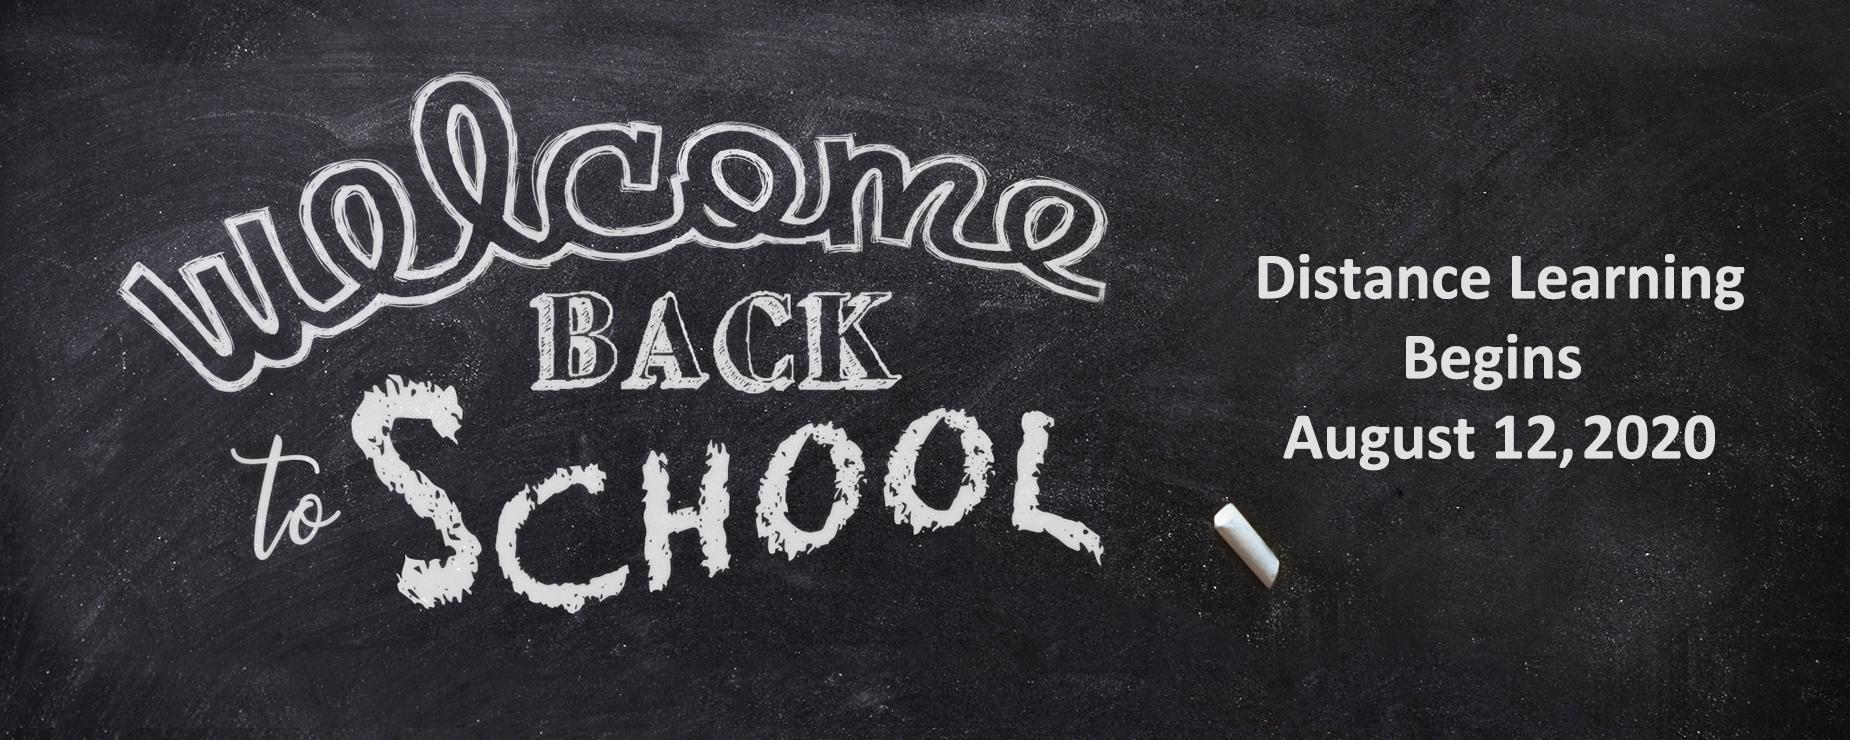 Chalkboard with Welcome Back to School, Distance Learning Begins August 12, 2020 written on it